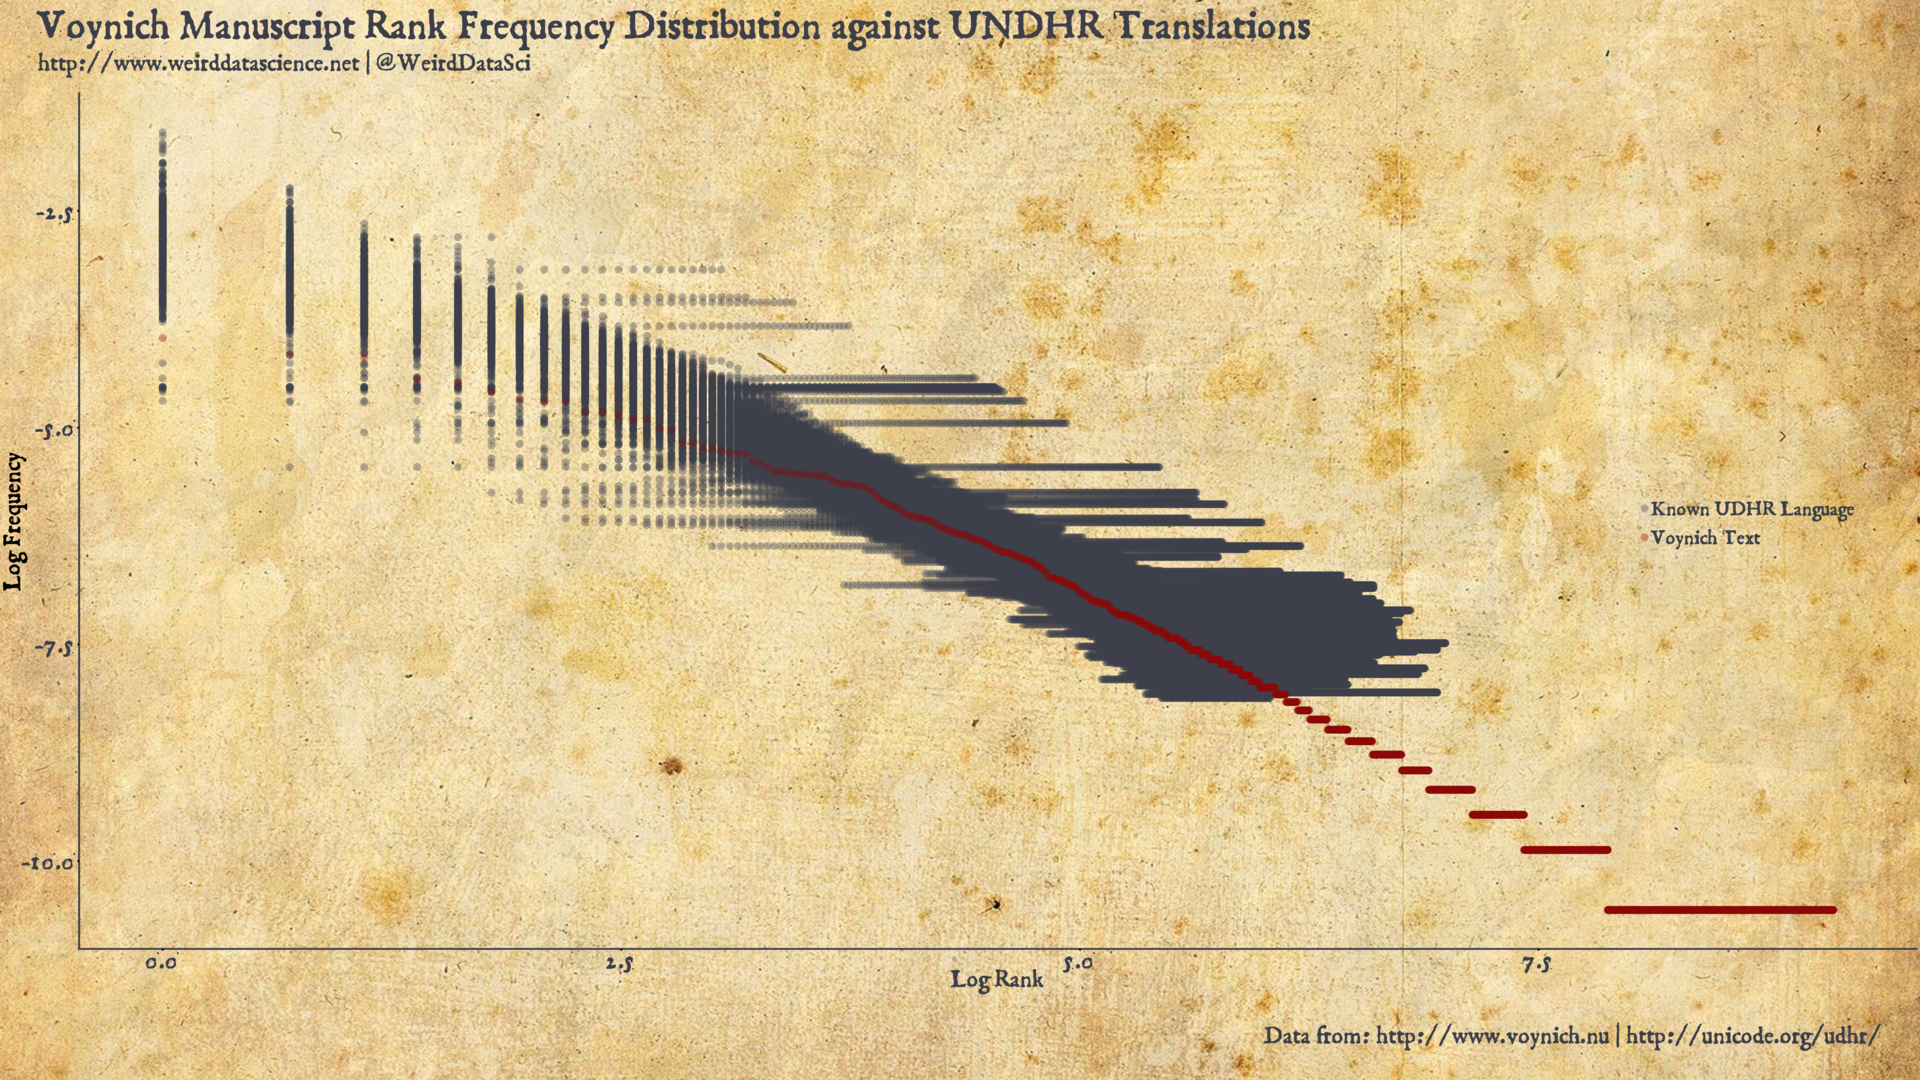 Voynich Manuscript Rank Frequency Distribution against UNDHR Translations